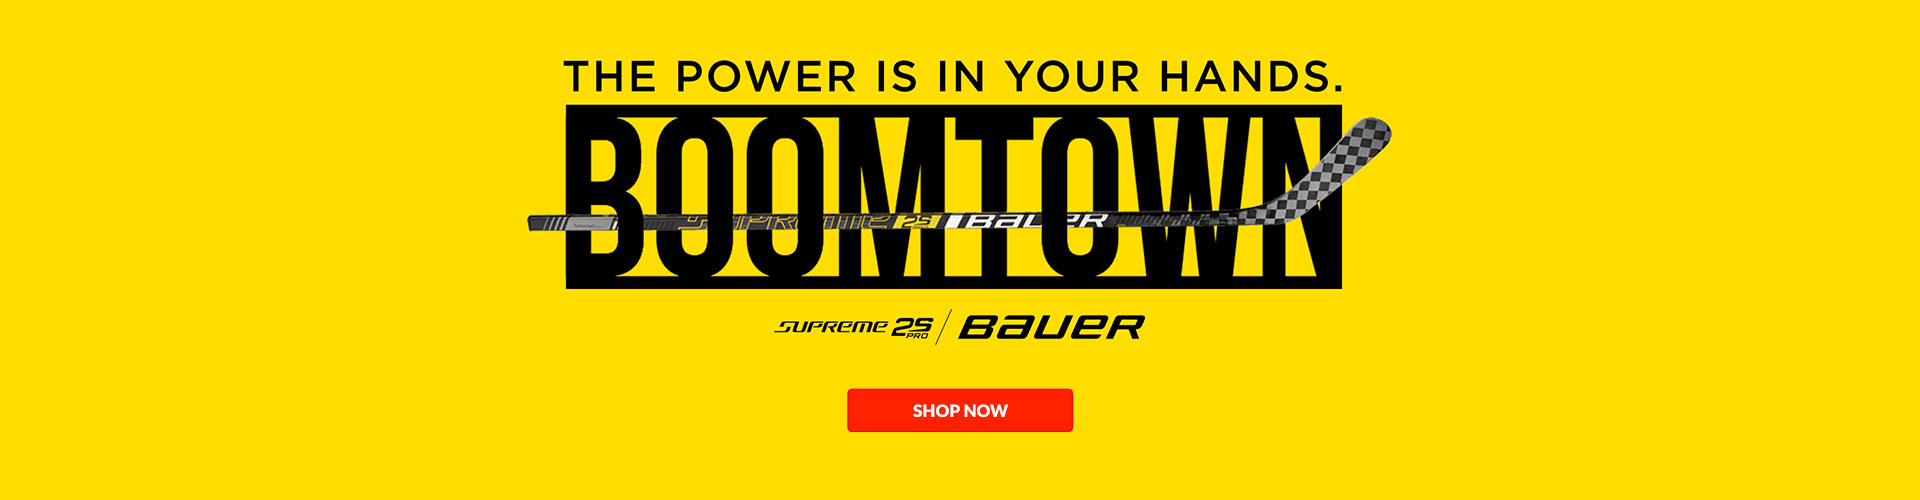 Shop The Bauer Supreme 2S Pro Hockey Stick Available For Sale At Source For Sports Stores Near You.